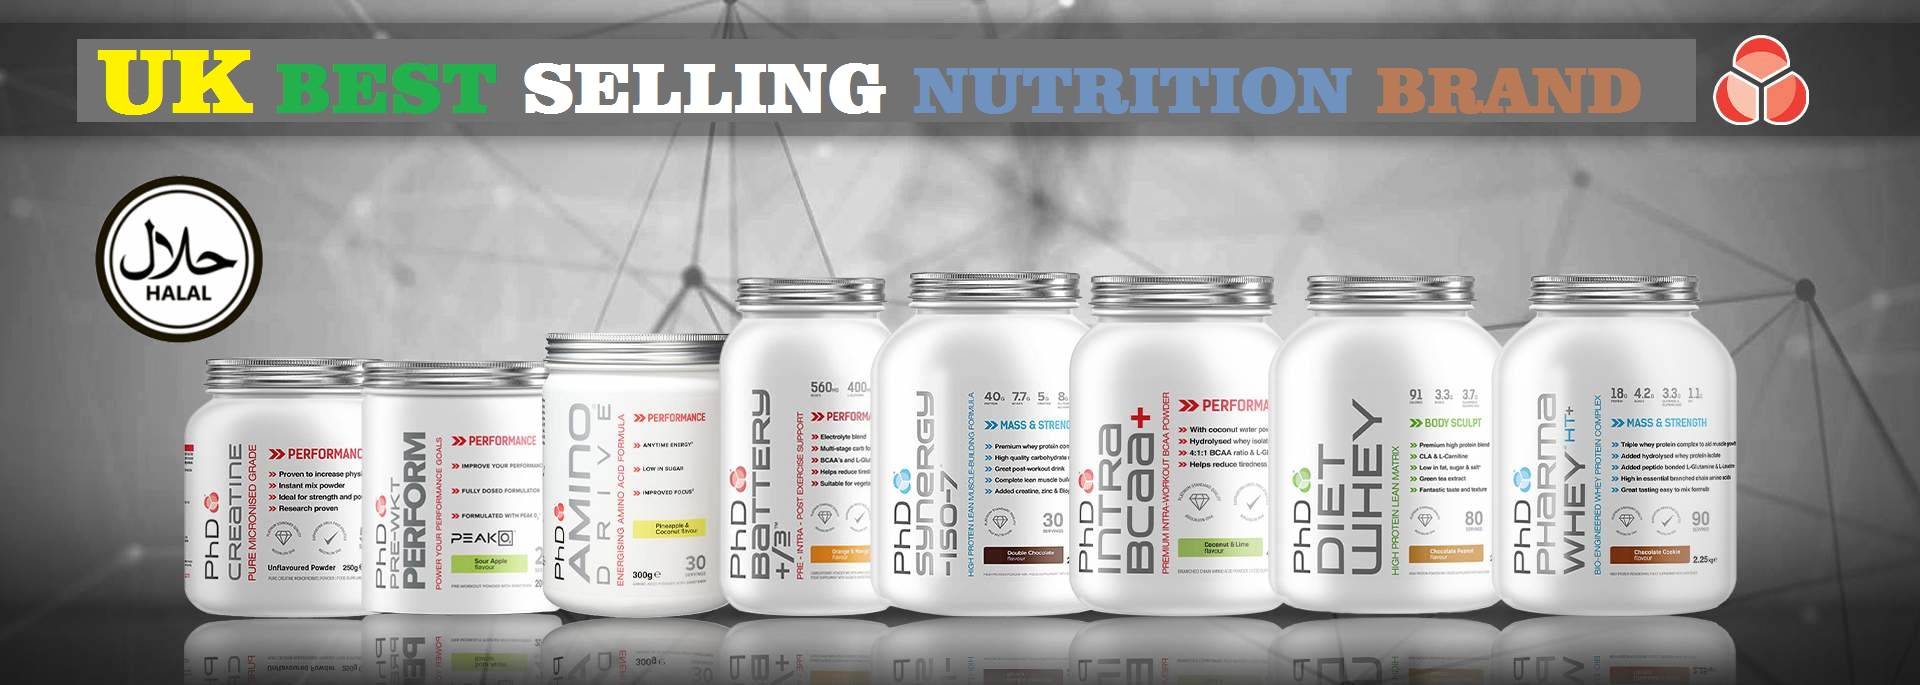 UK BEST SELLING NUTRITION BRAND AT www.arnutrition.pk